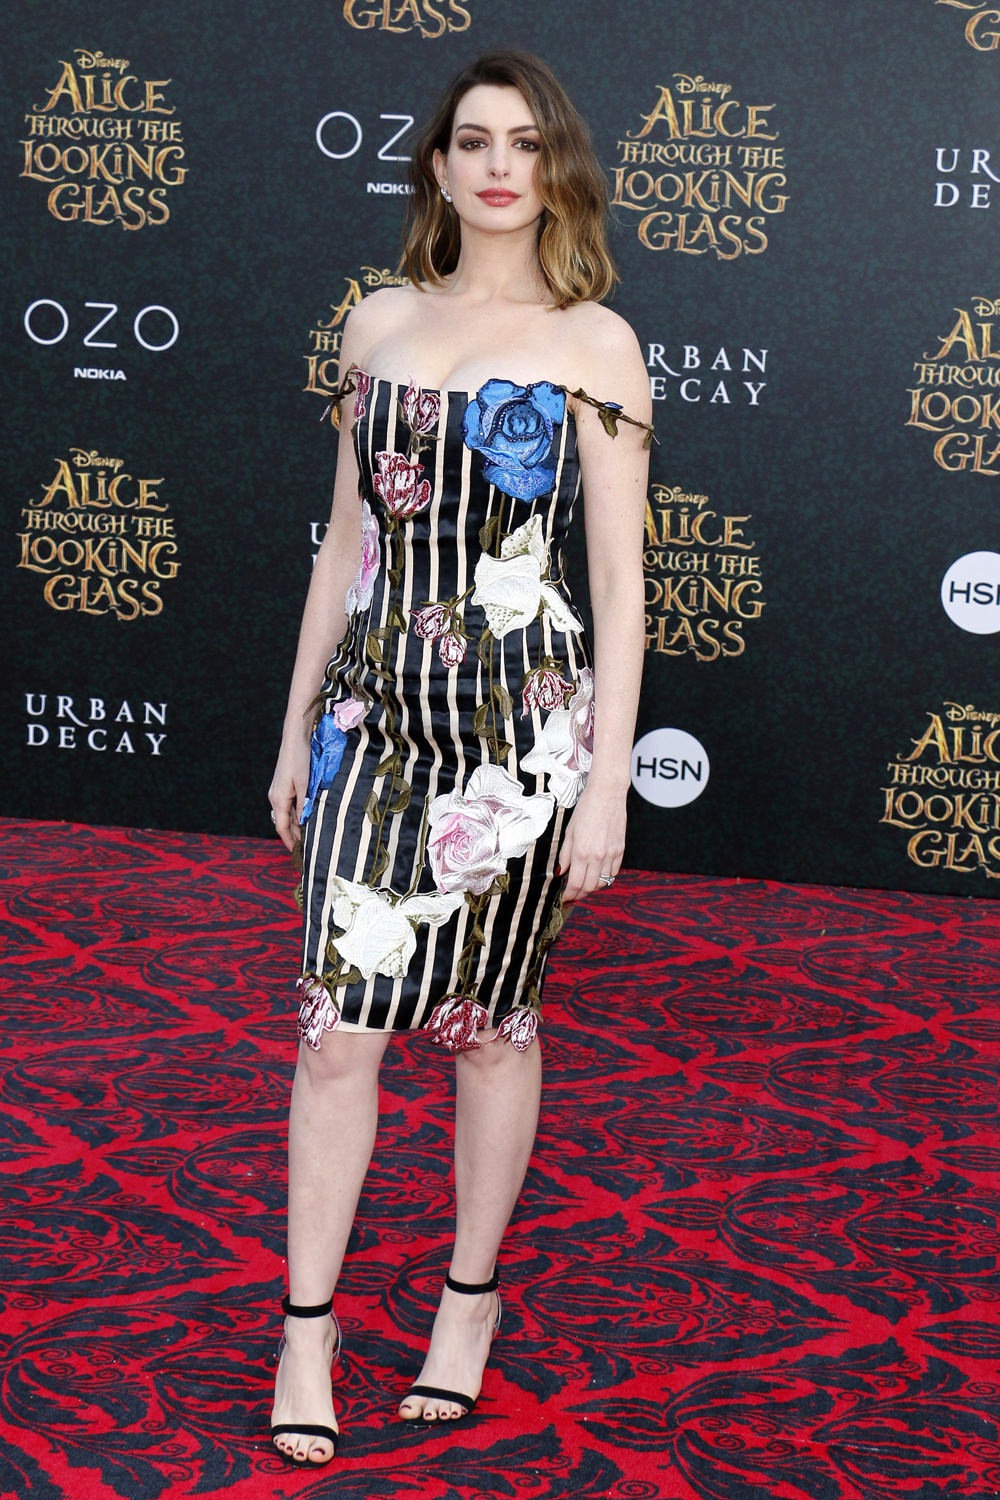 Anne-Hathaway-Alice-Through-The-Looking-Glass-Movie-Premiere-Red-Carpet-Fashion-Christopher-Kane-Tom-Lorenzo-Site (1)